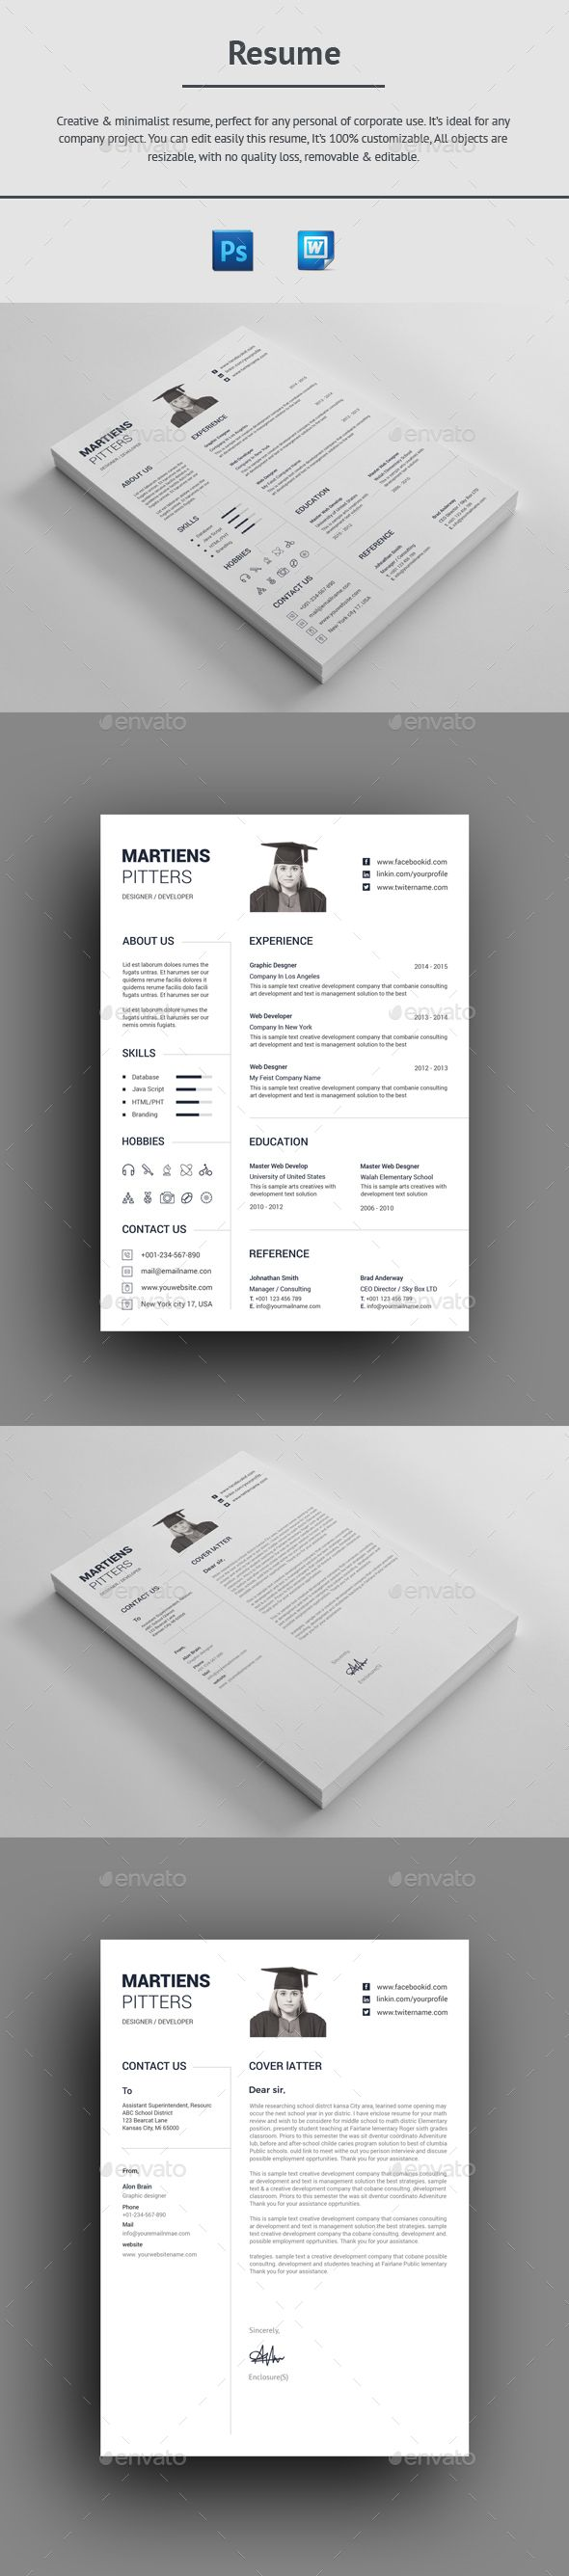 Best Resume Templates Images On   A Professional